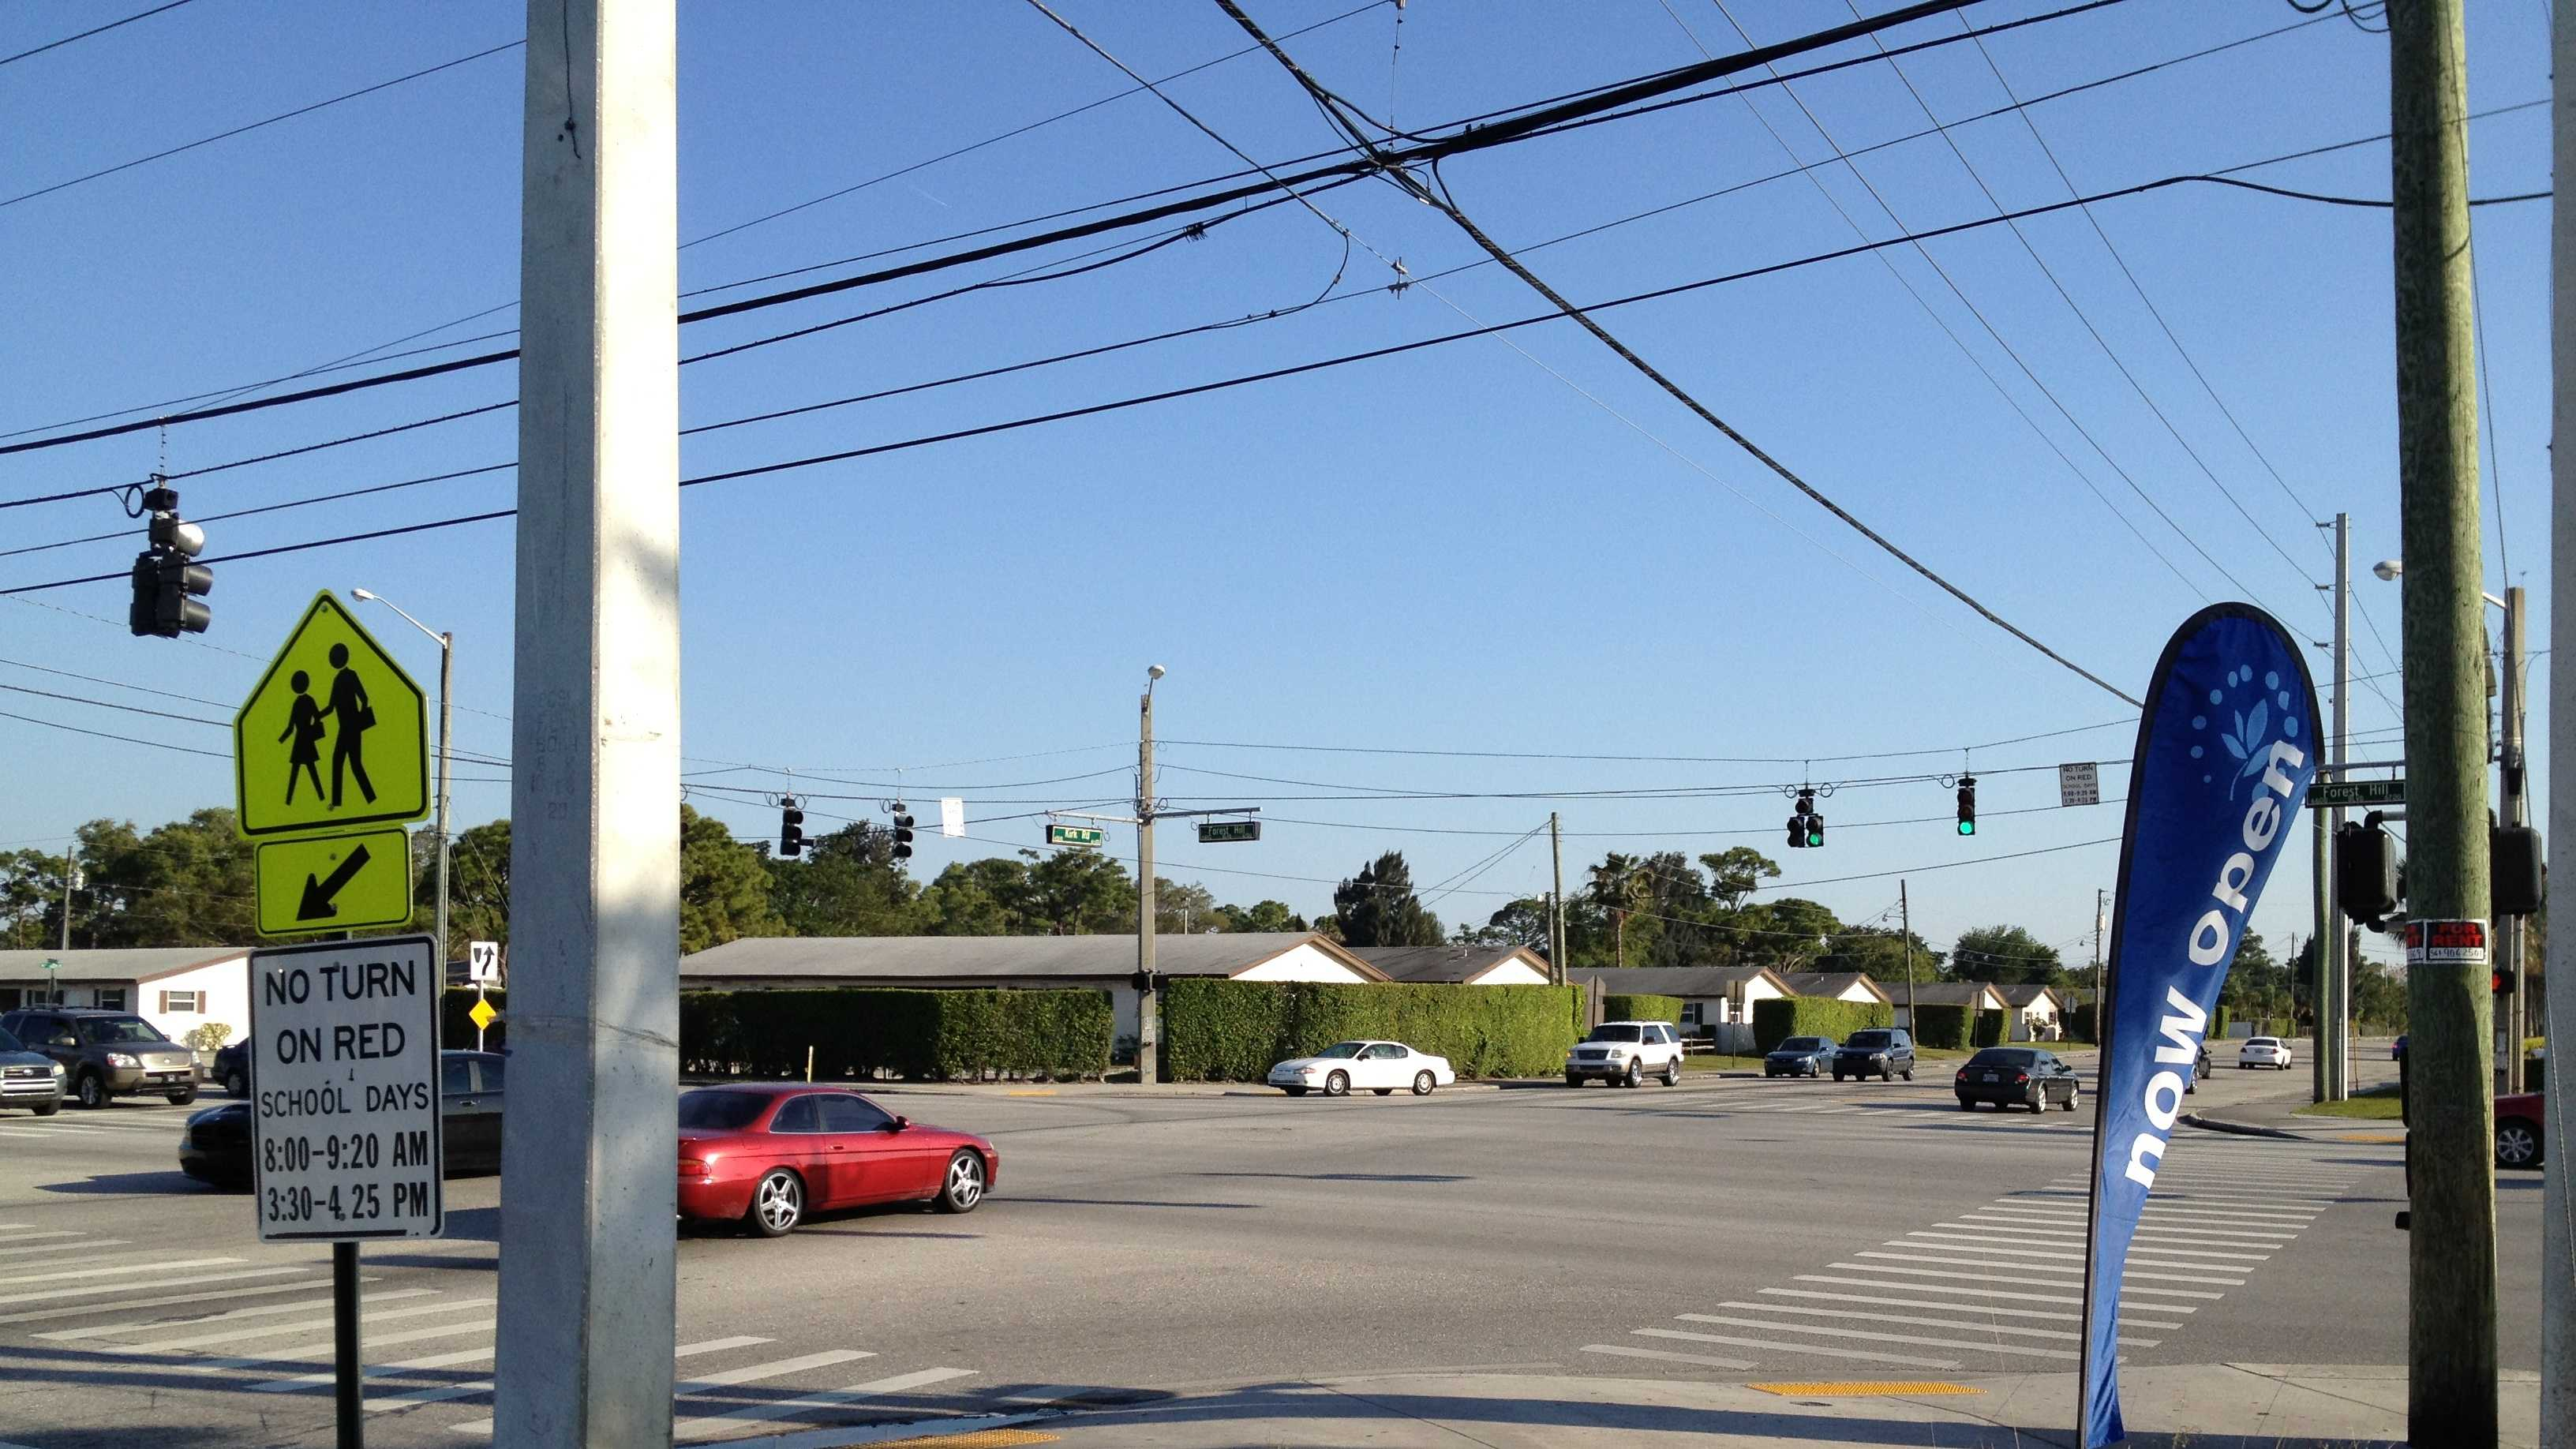 Intersection where boy struck by vehicle